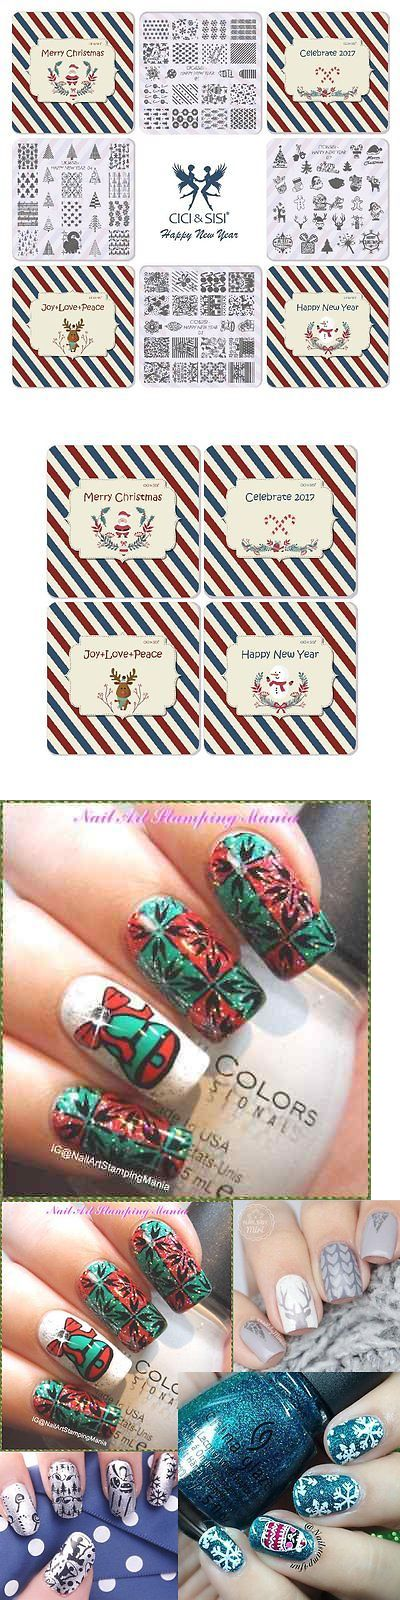 Nail Art Accessories: Ciciandsisi Christmas Nail Art Stamping Plates Kit Stamp Plate Manicure Diy 4 New BUY IT NOW ONLY: $34.45